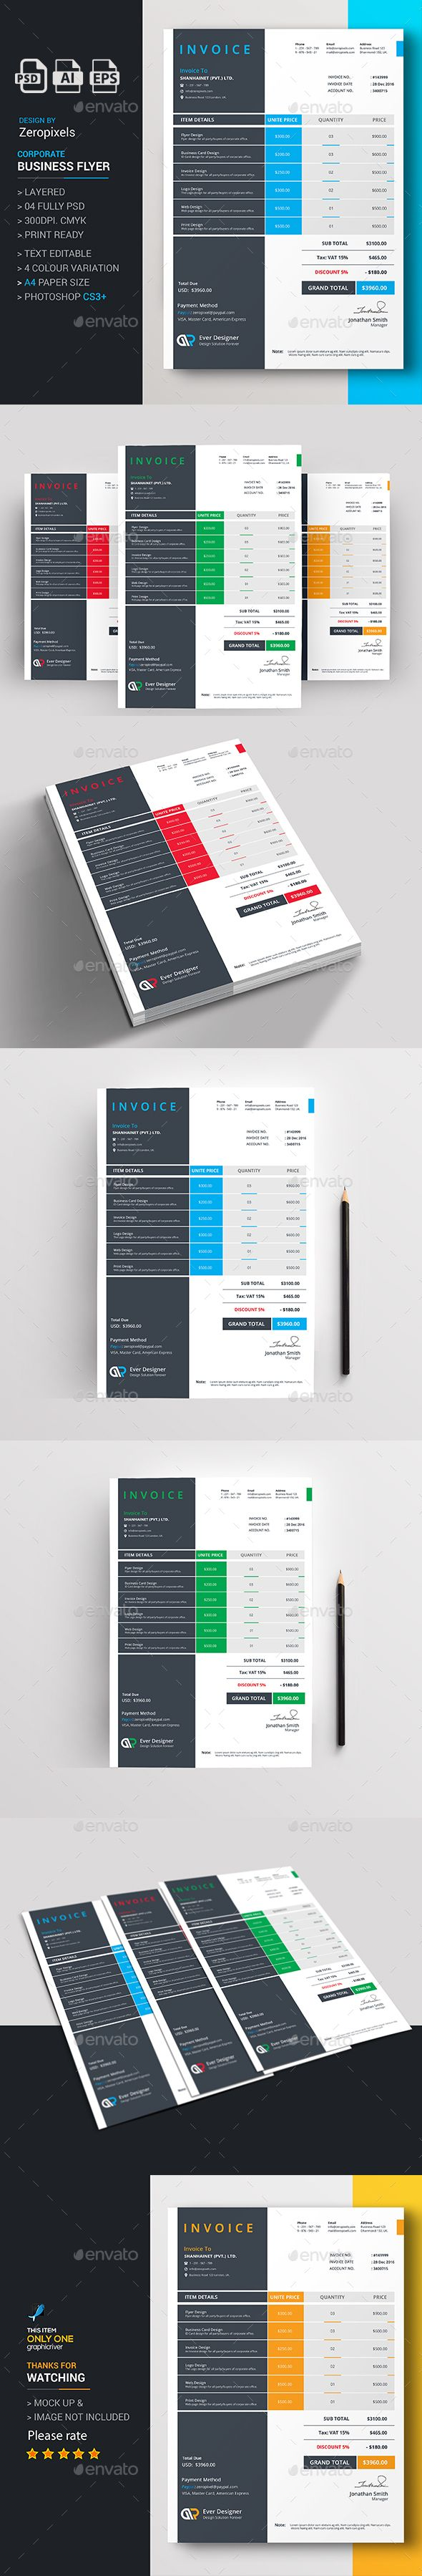 invoice  u2014 photoshop psd  elegant invoice  indesign  u2022 available here  u2192 s     graphicriver net